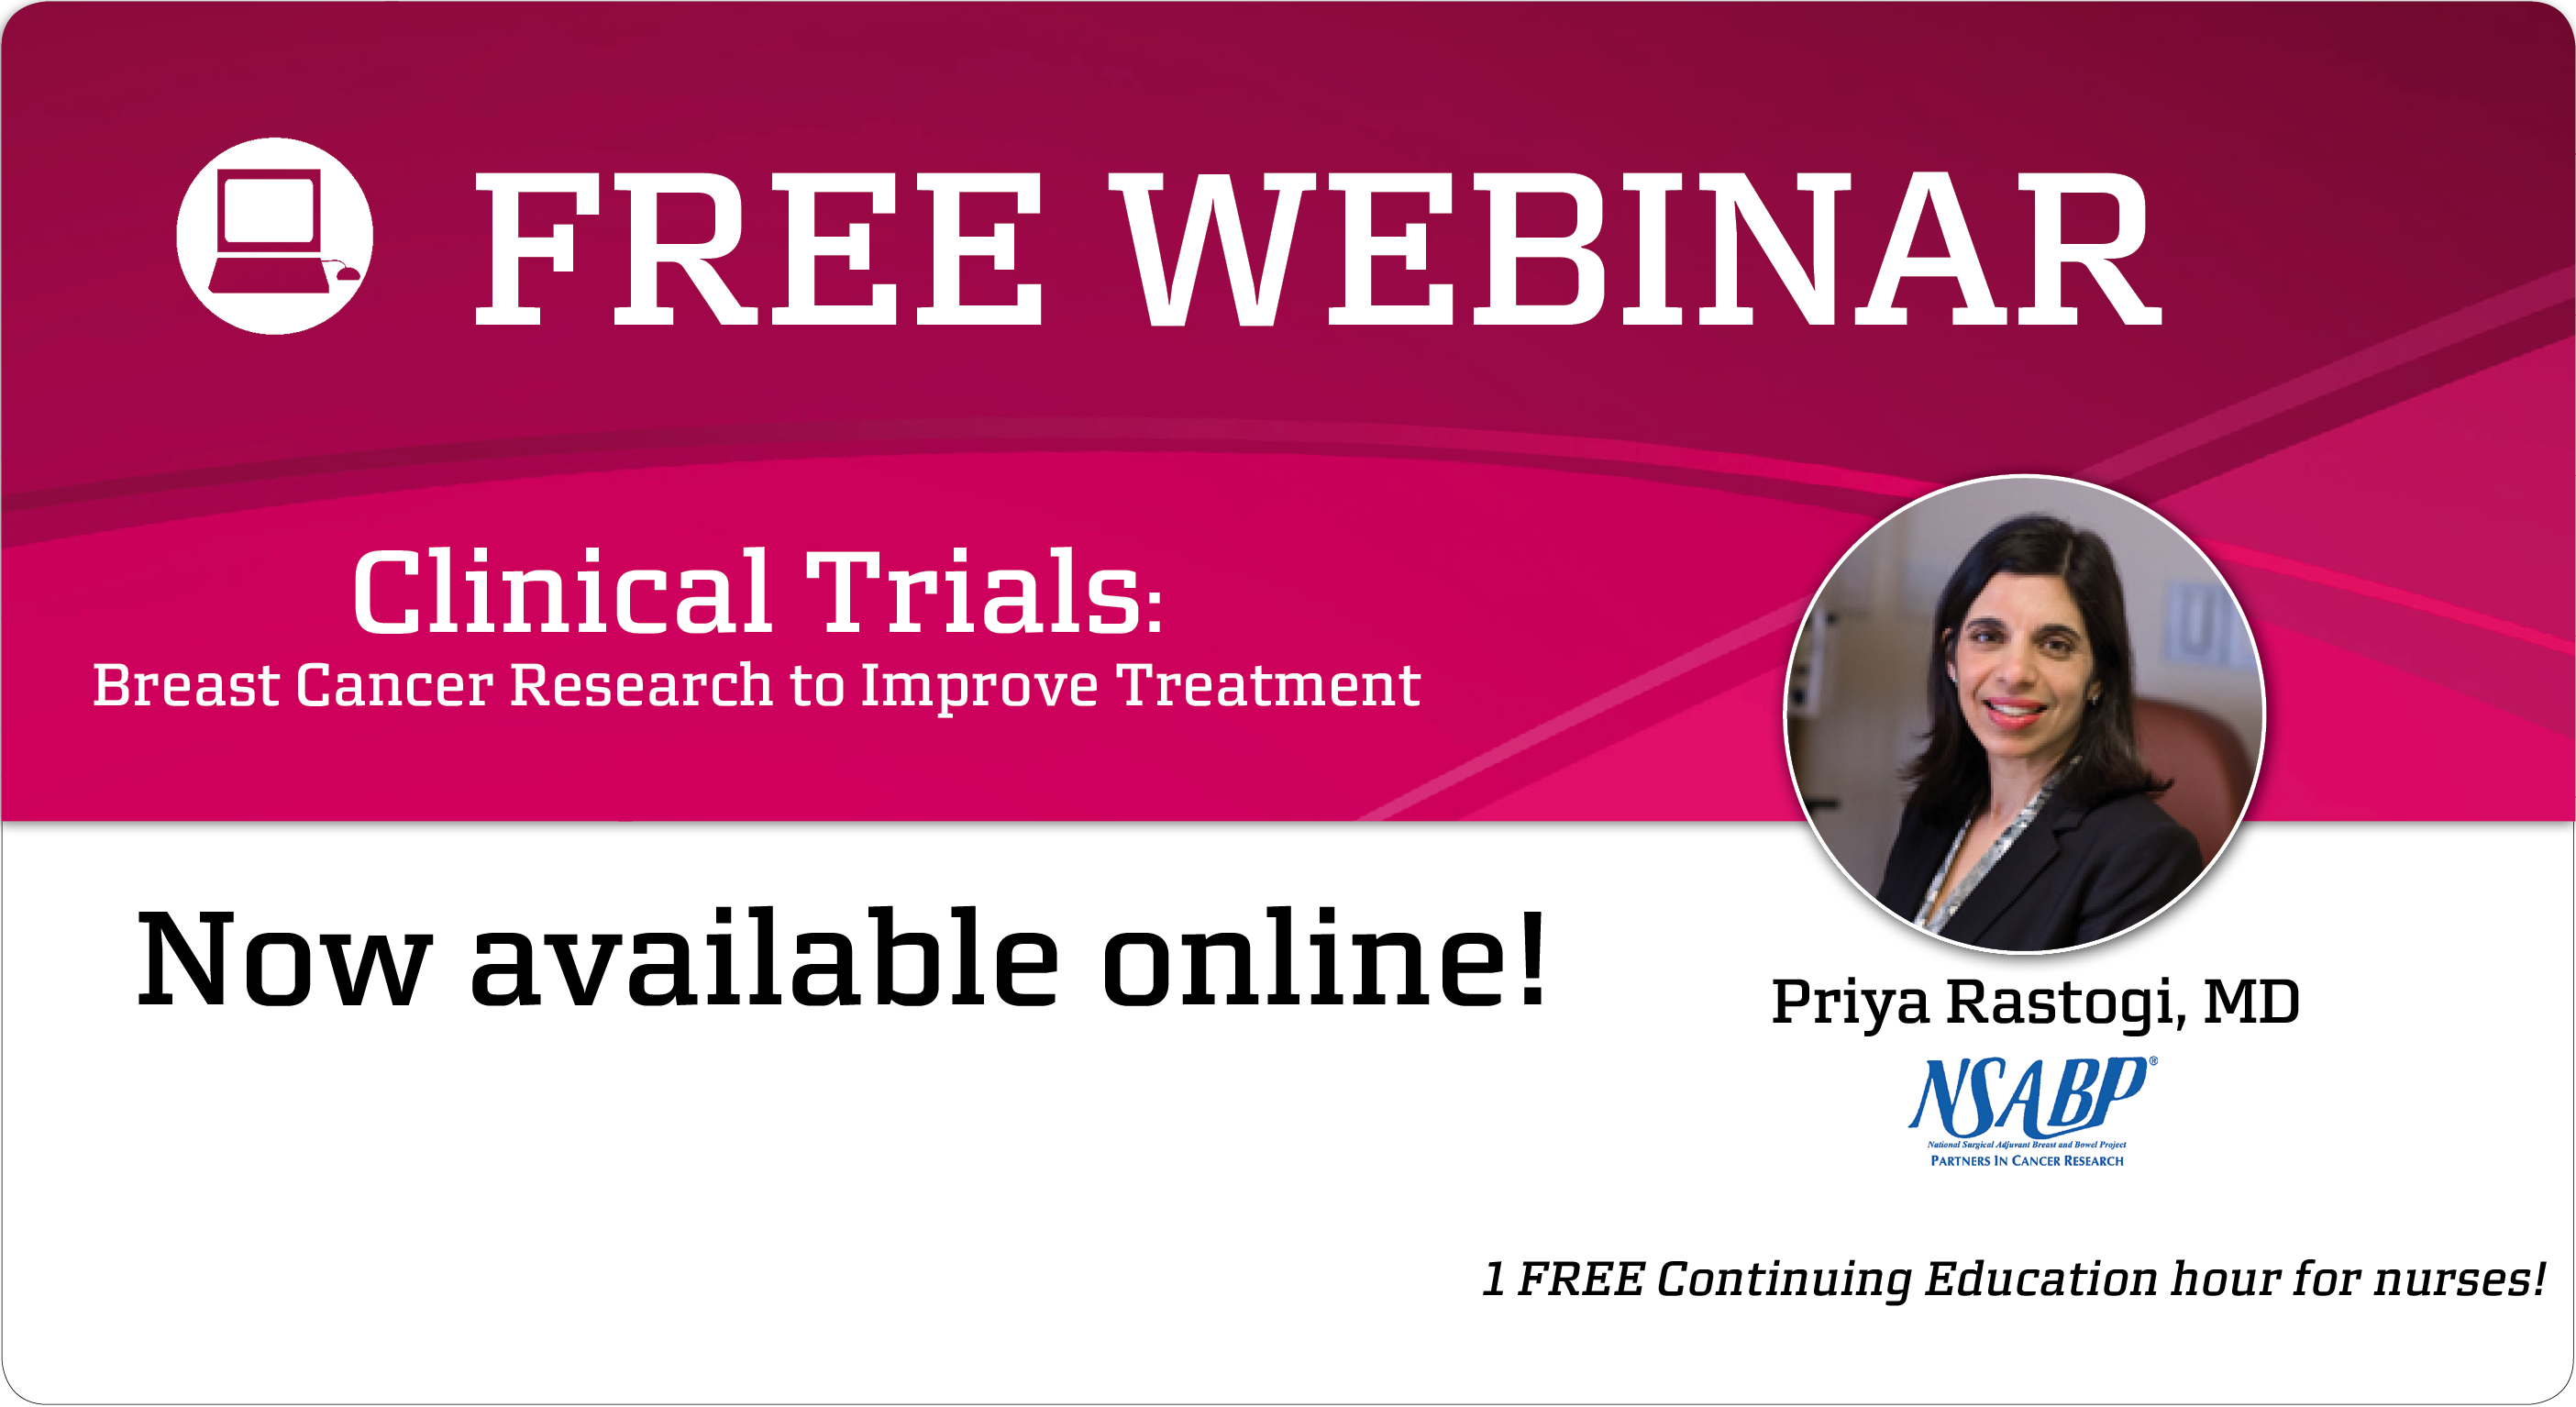 Clinical trials webinar now available online